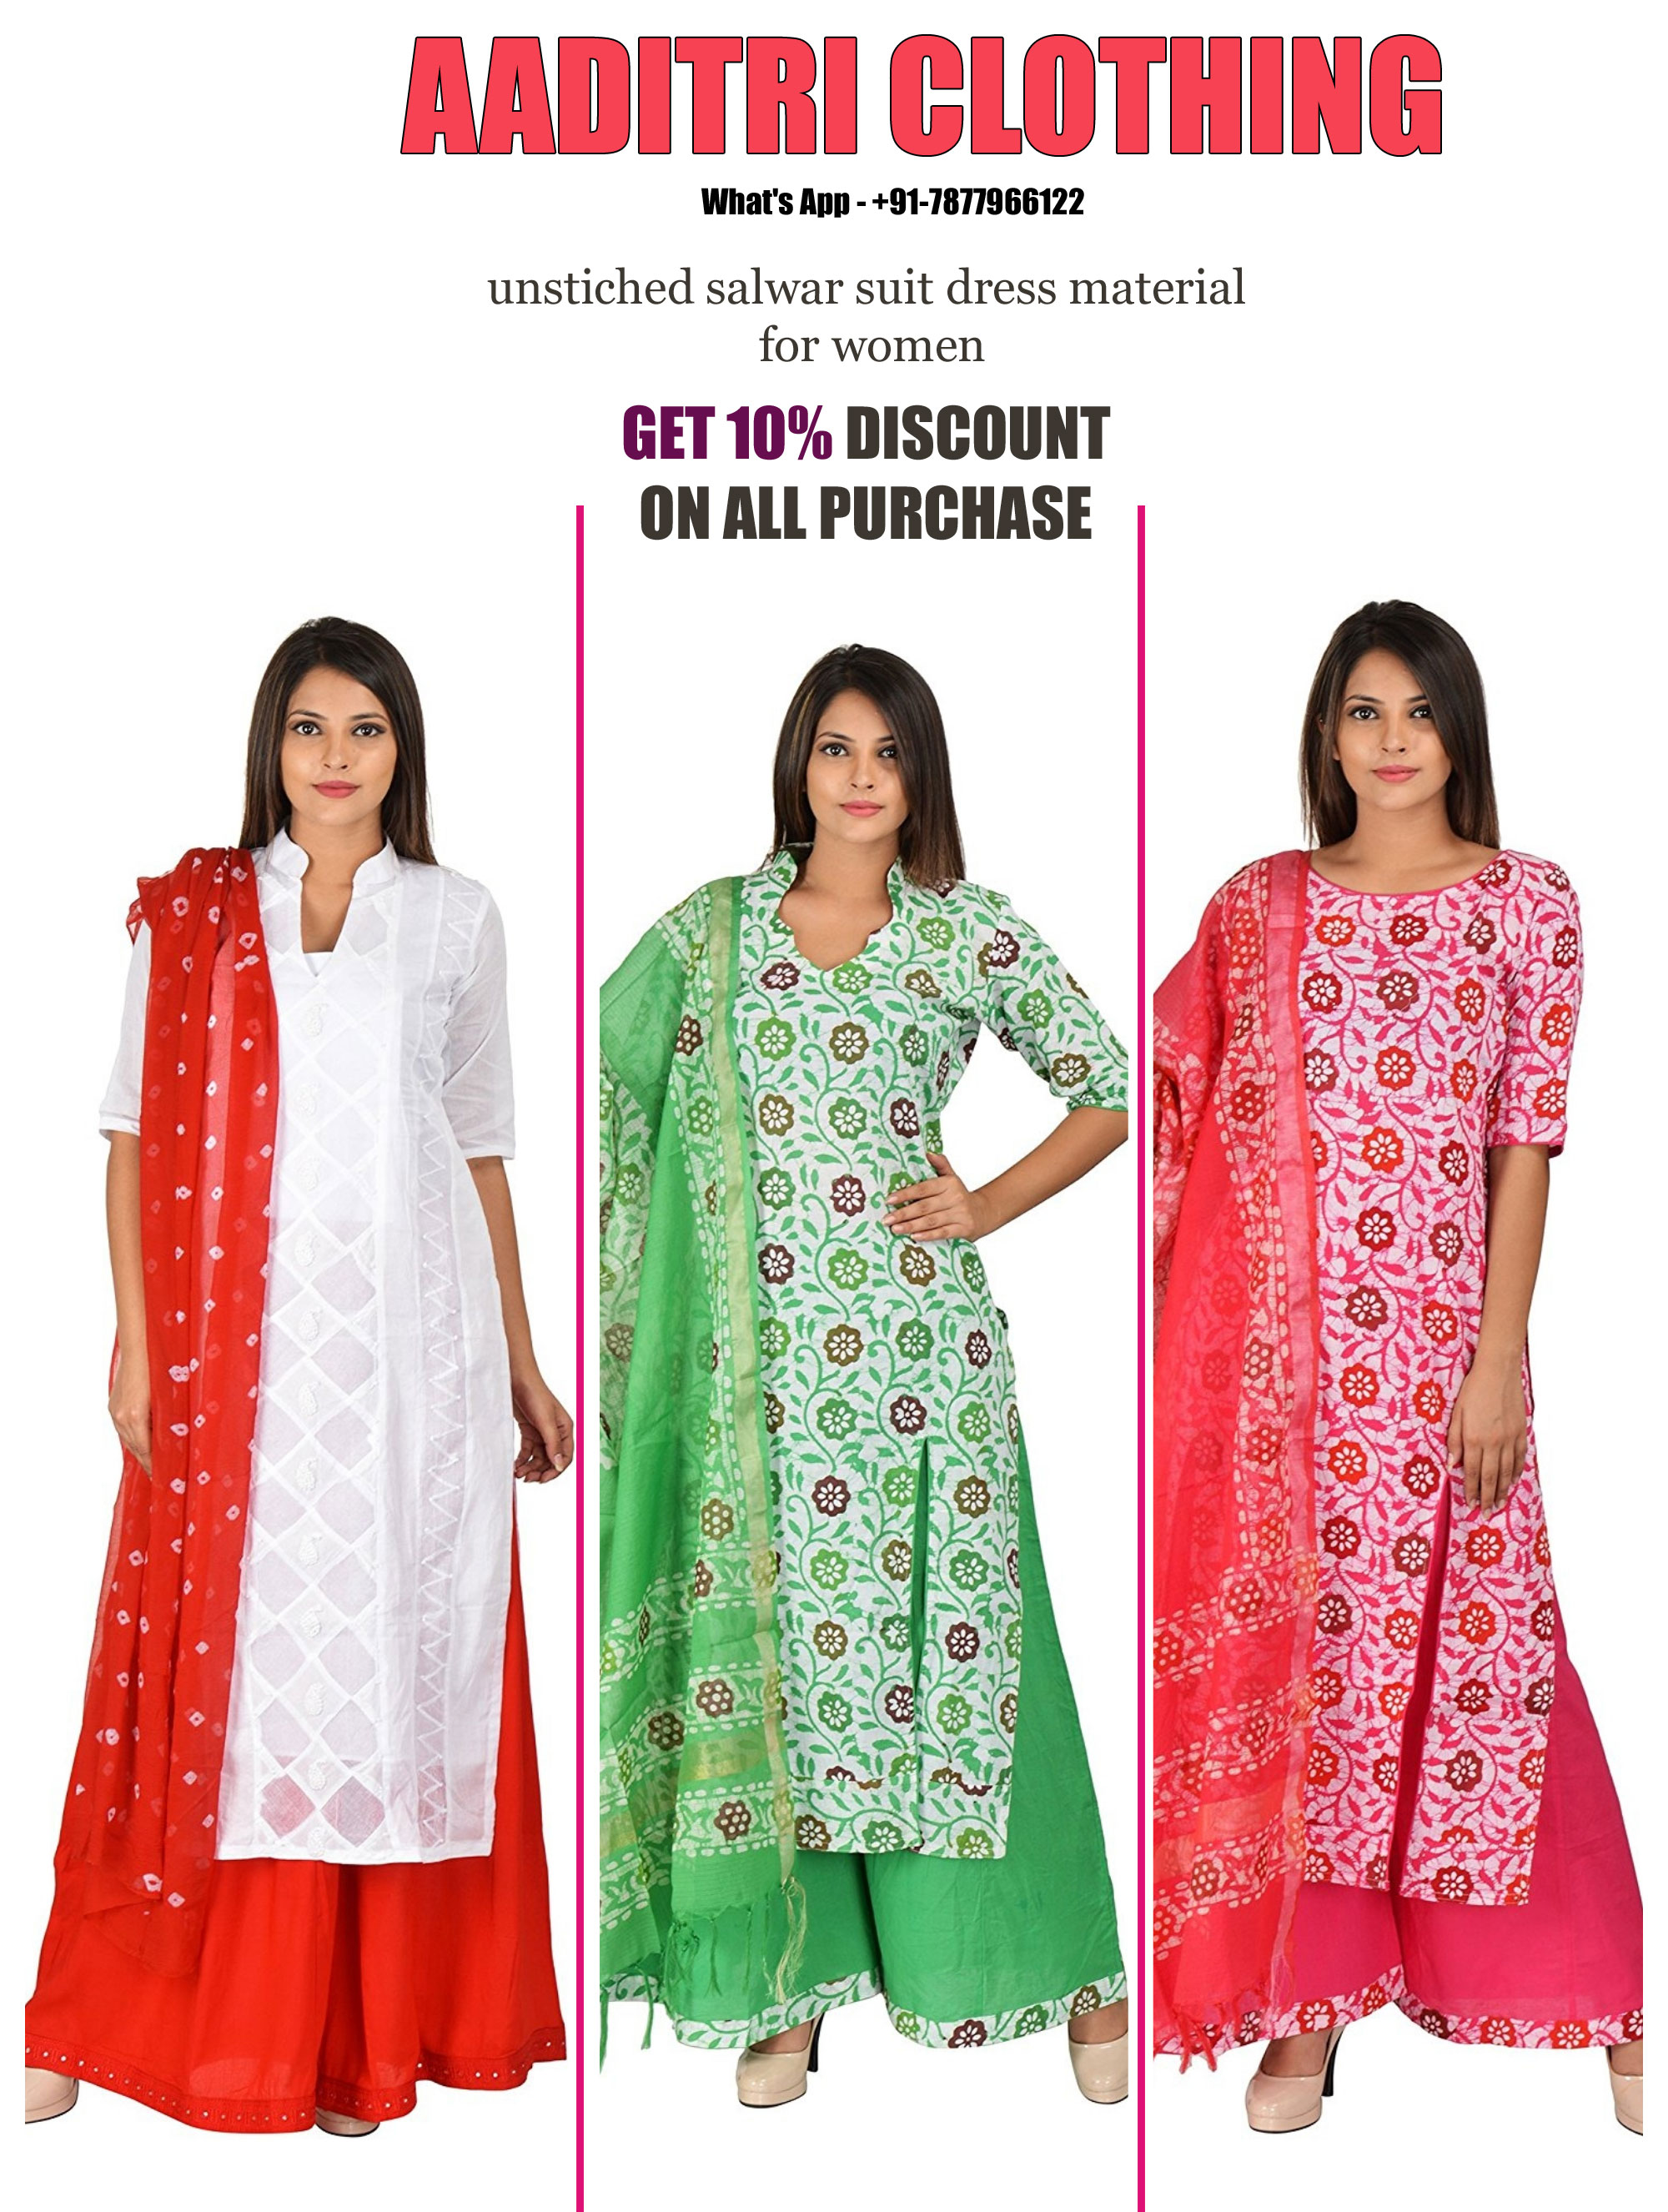 image of Aaditri Clothing - Manufacturer Of Dress Material